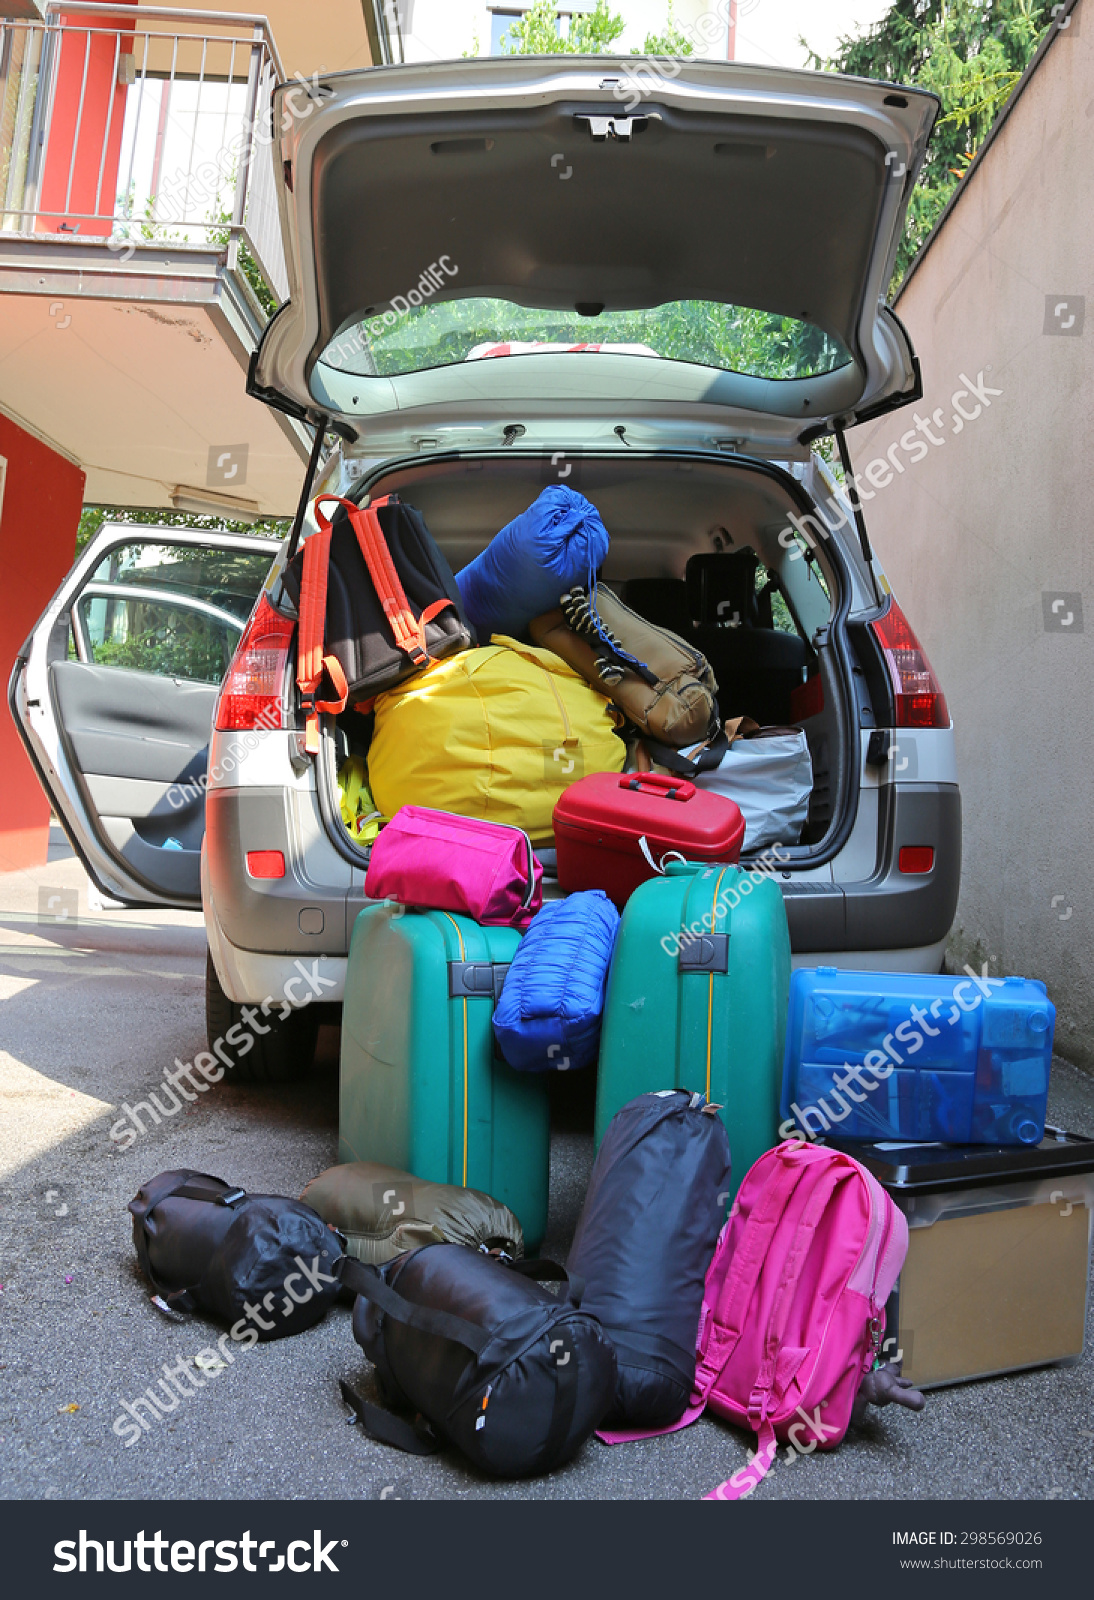 luggage and suitcases in car for departure for summer holidays stock photo 298569026 shutterstock. Black Bedroom Furniture Sets. Home Design Ideas